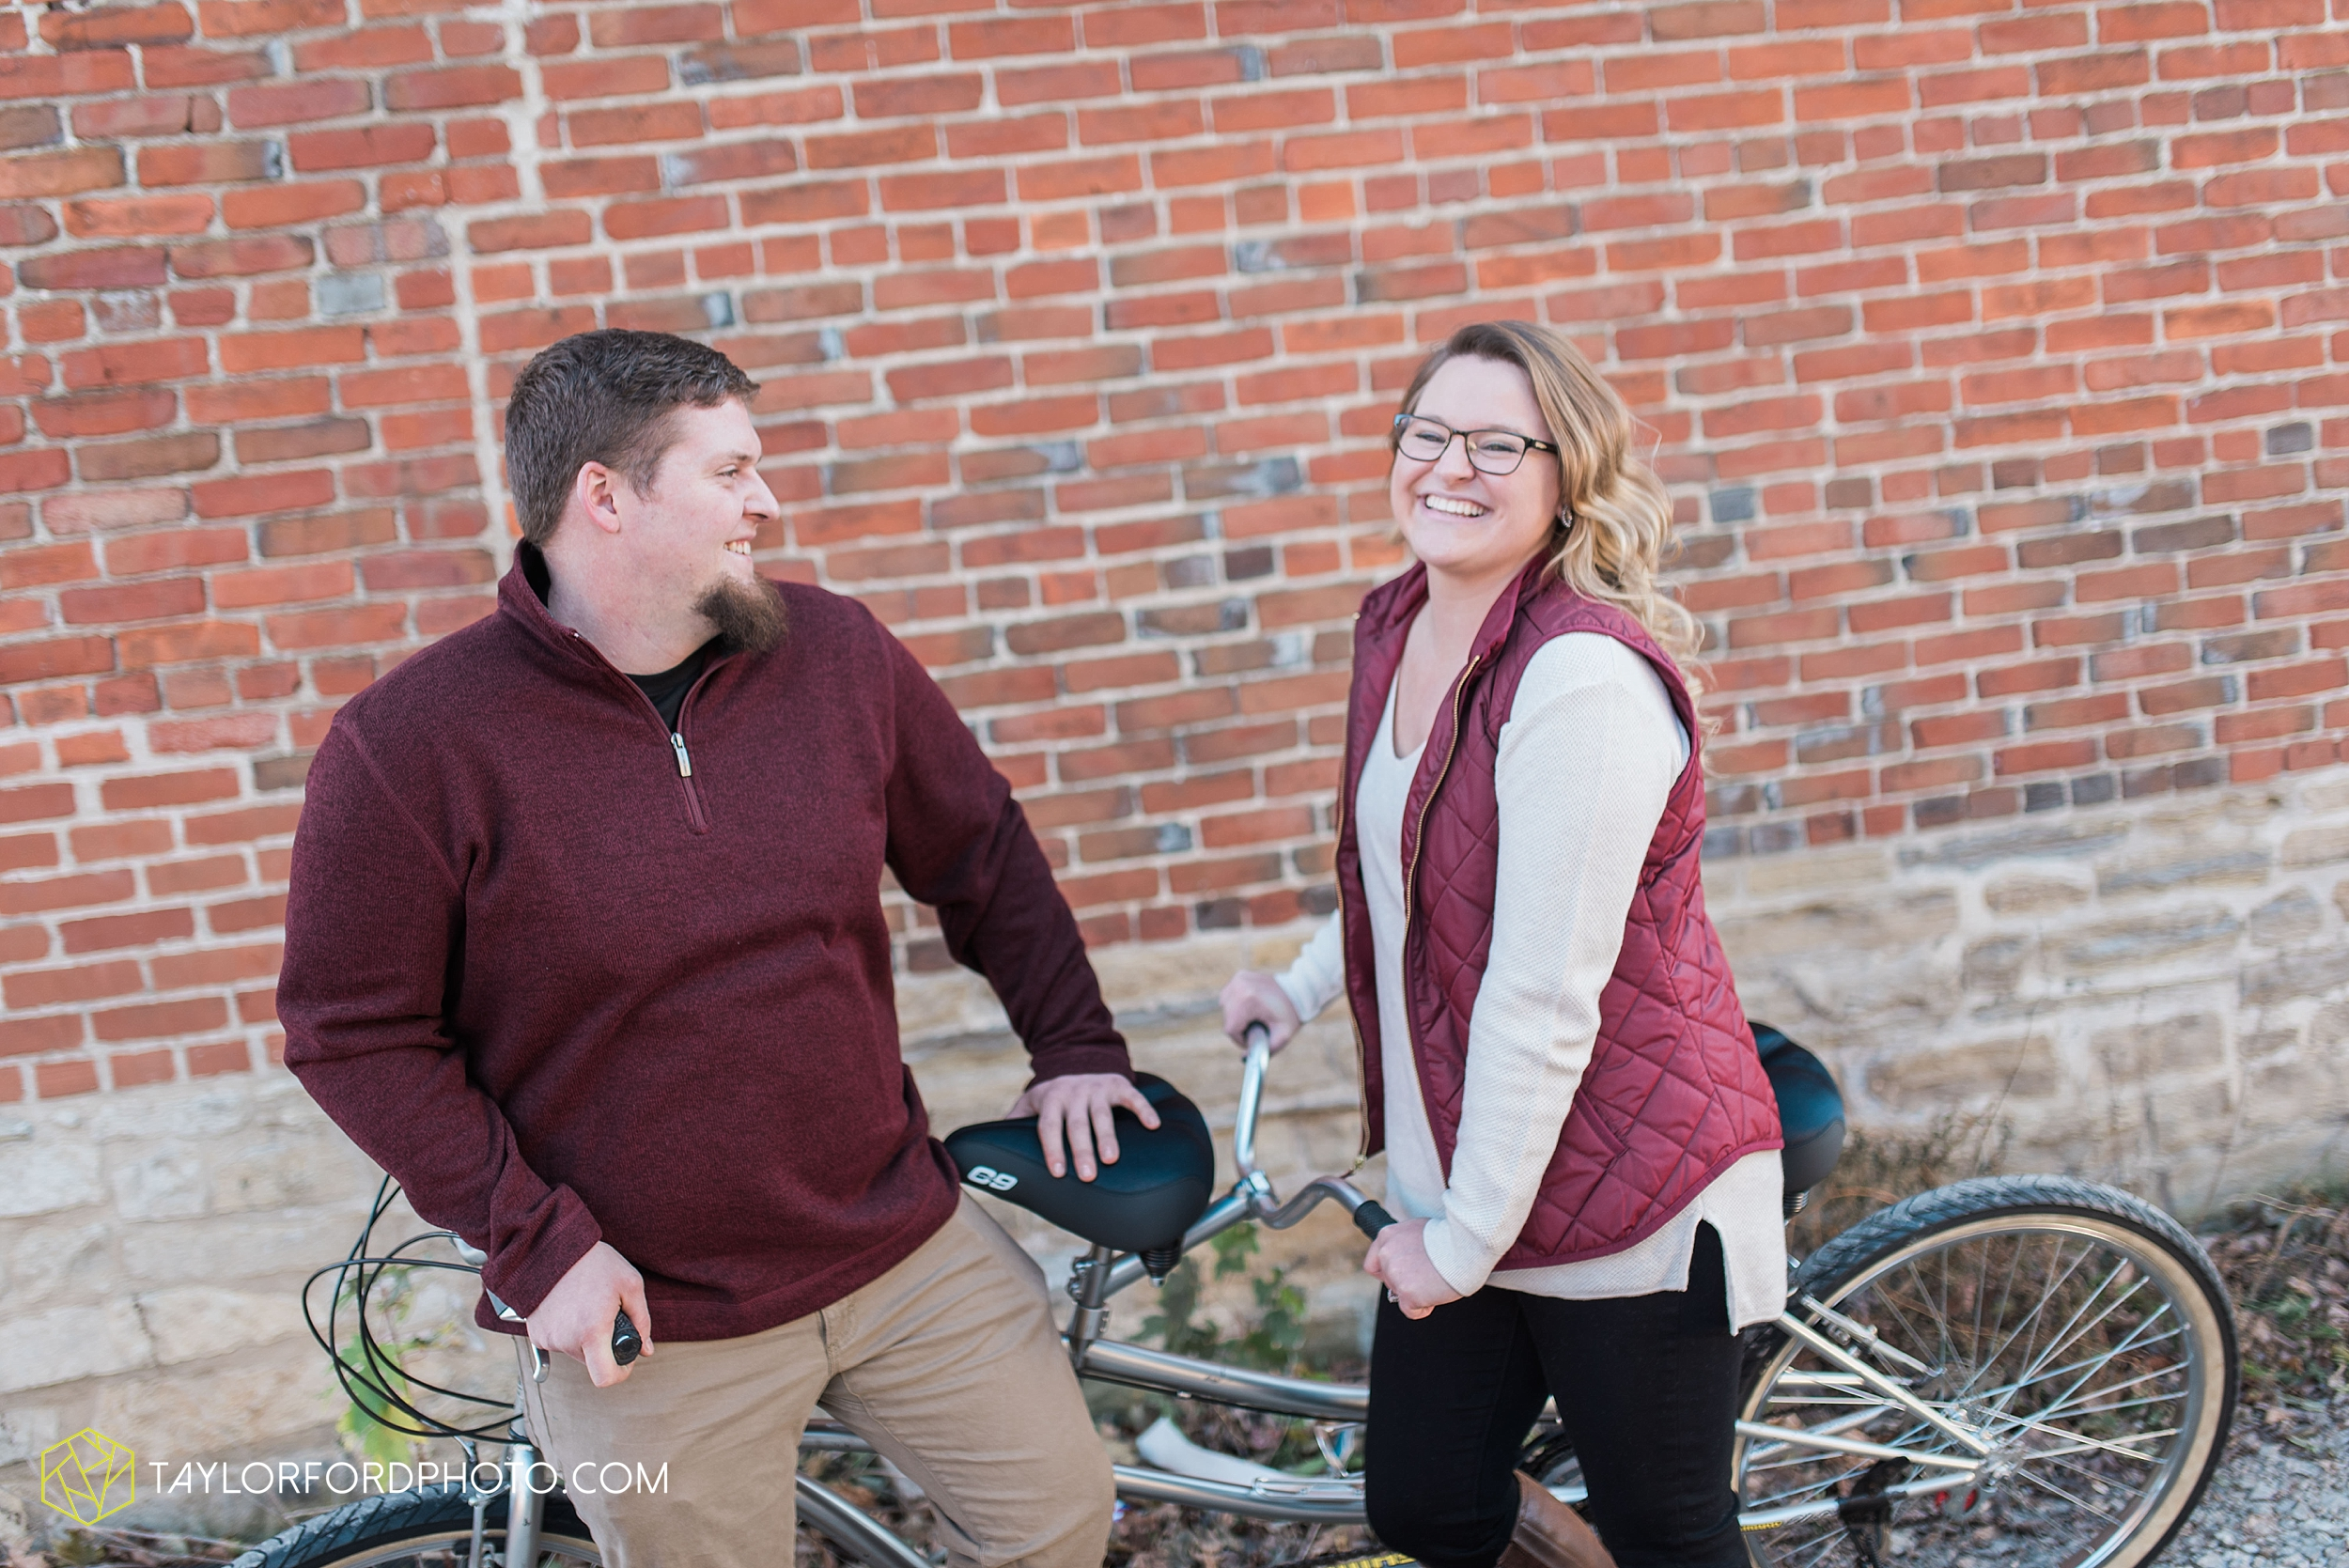 fort-wayne-new-haven-indiana-engagement-photographer-Taylor-Ford-Photography_5248.jpg